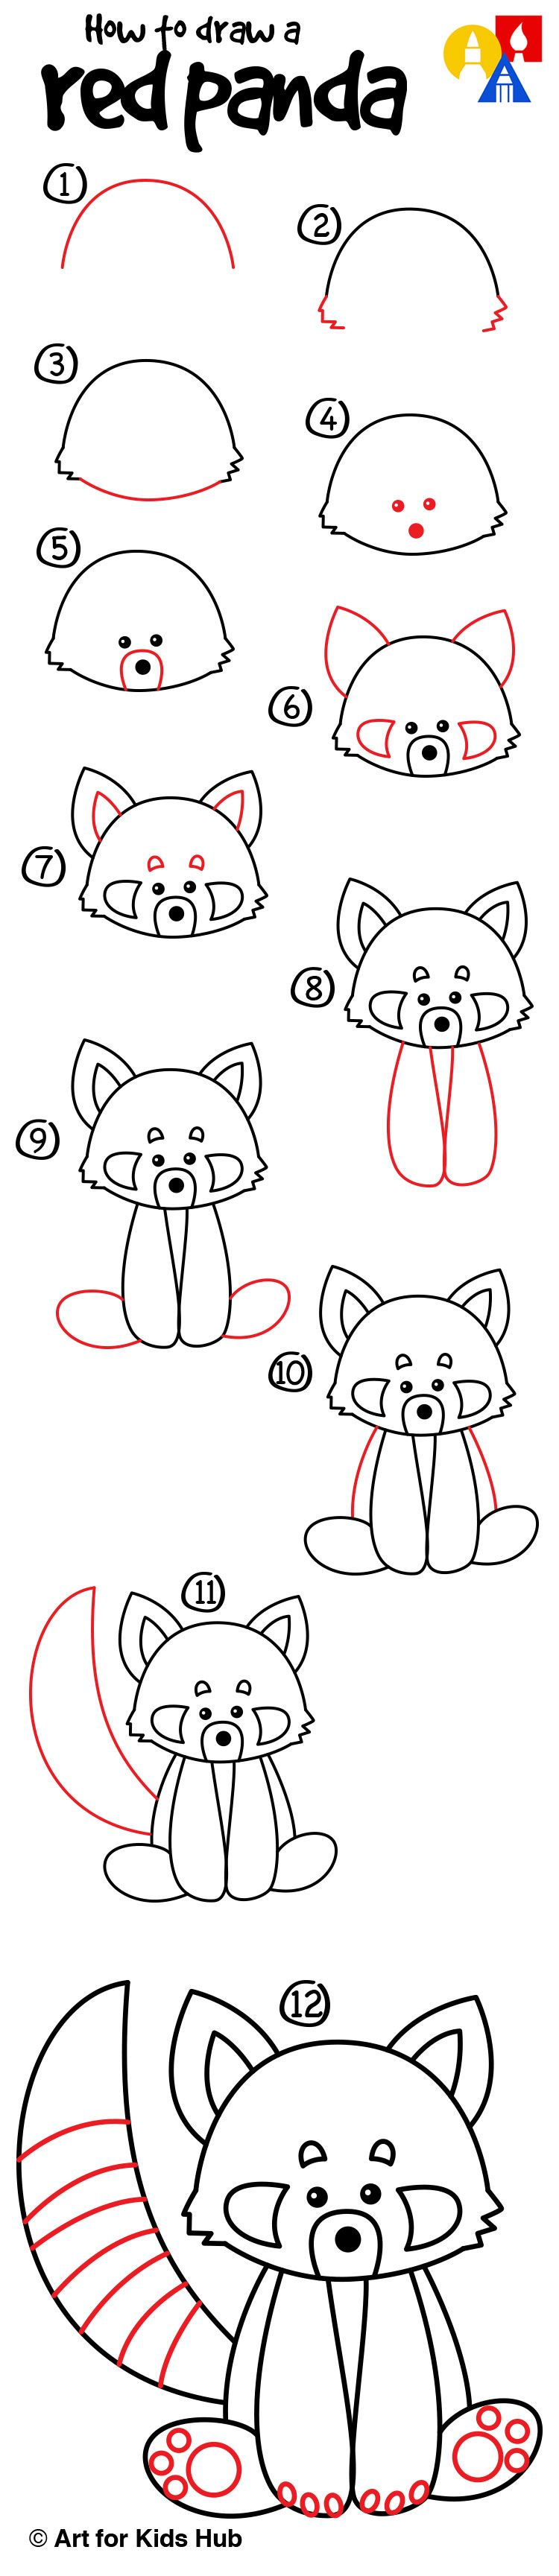 How To Draw A Red Panda Art For Kids Hub Facile à